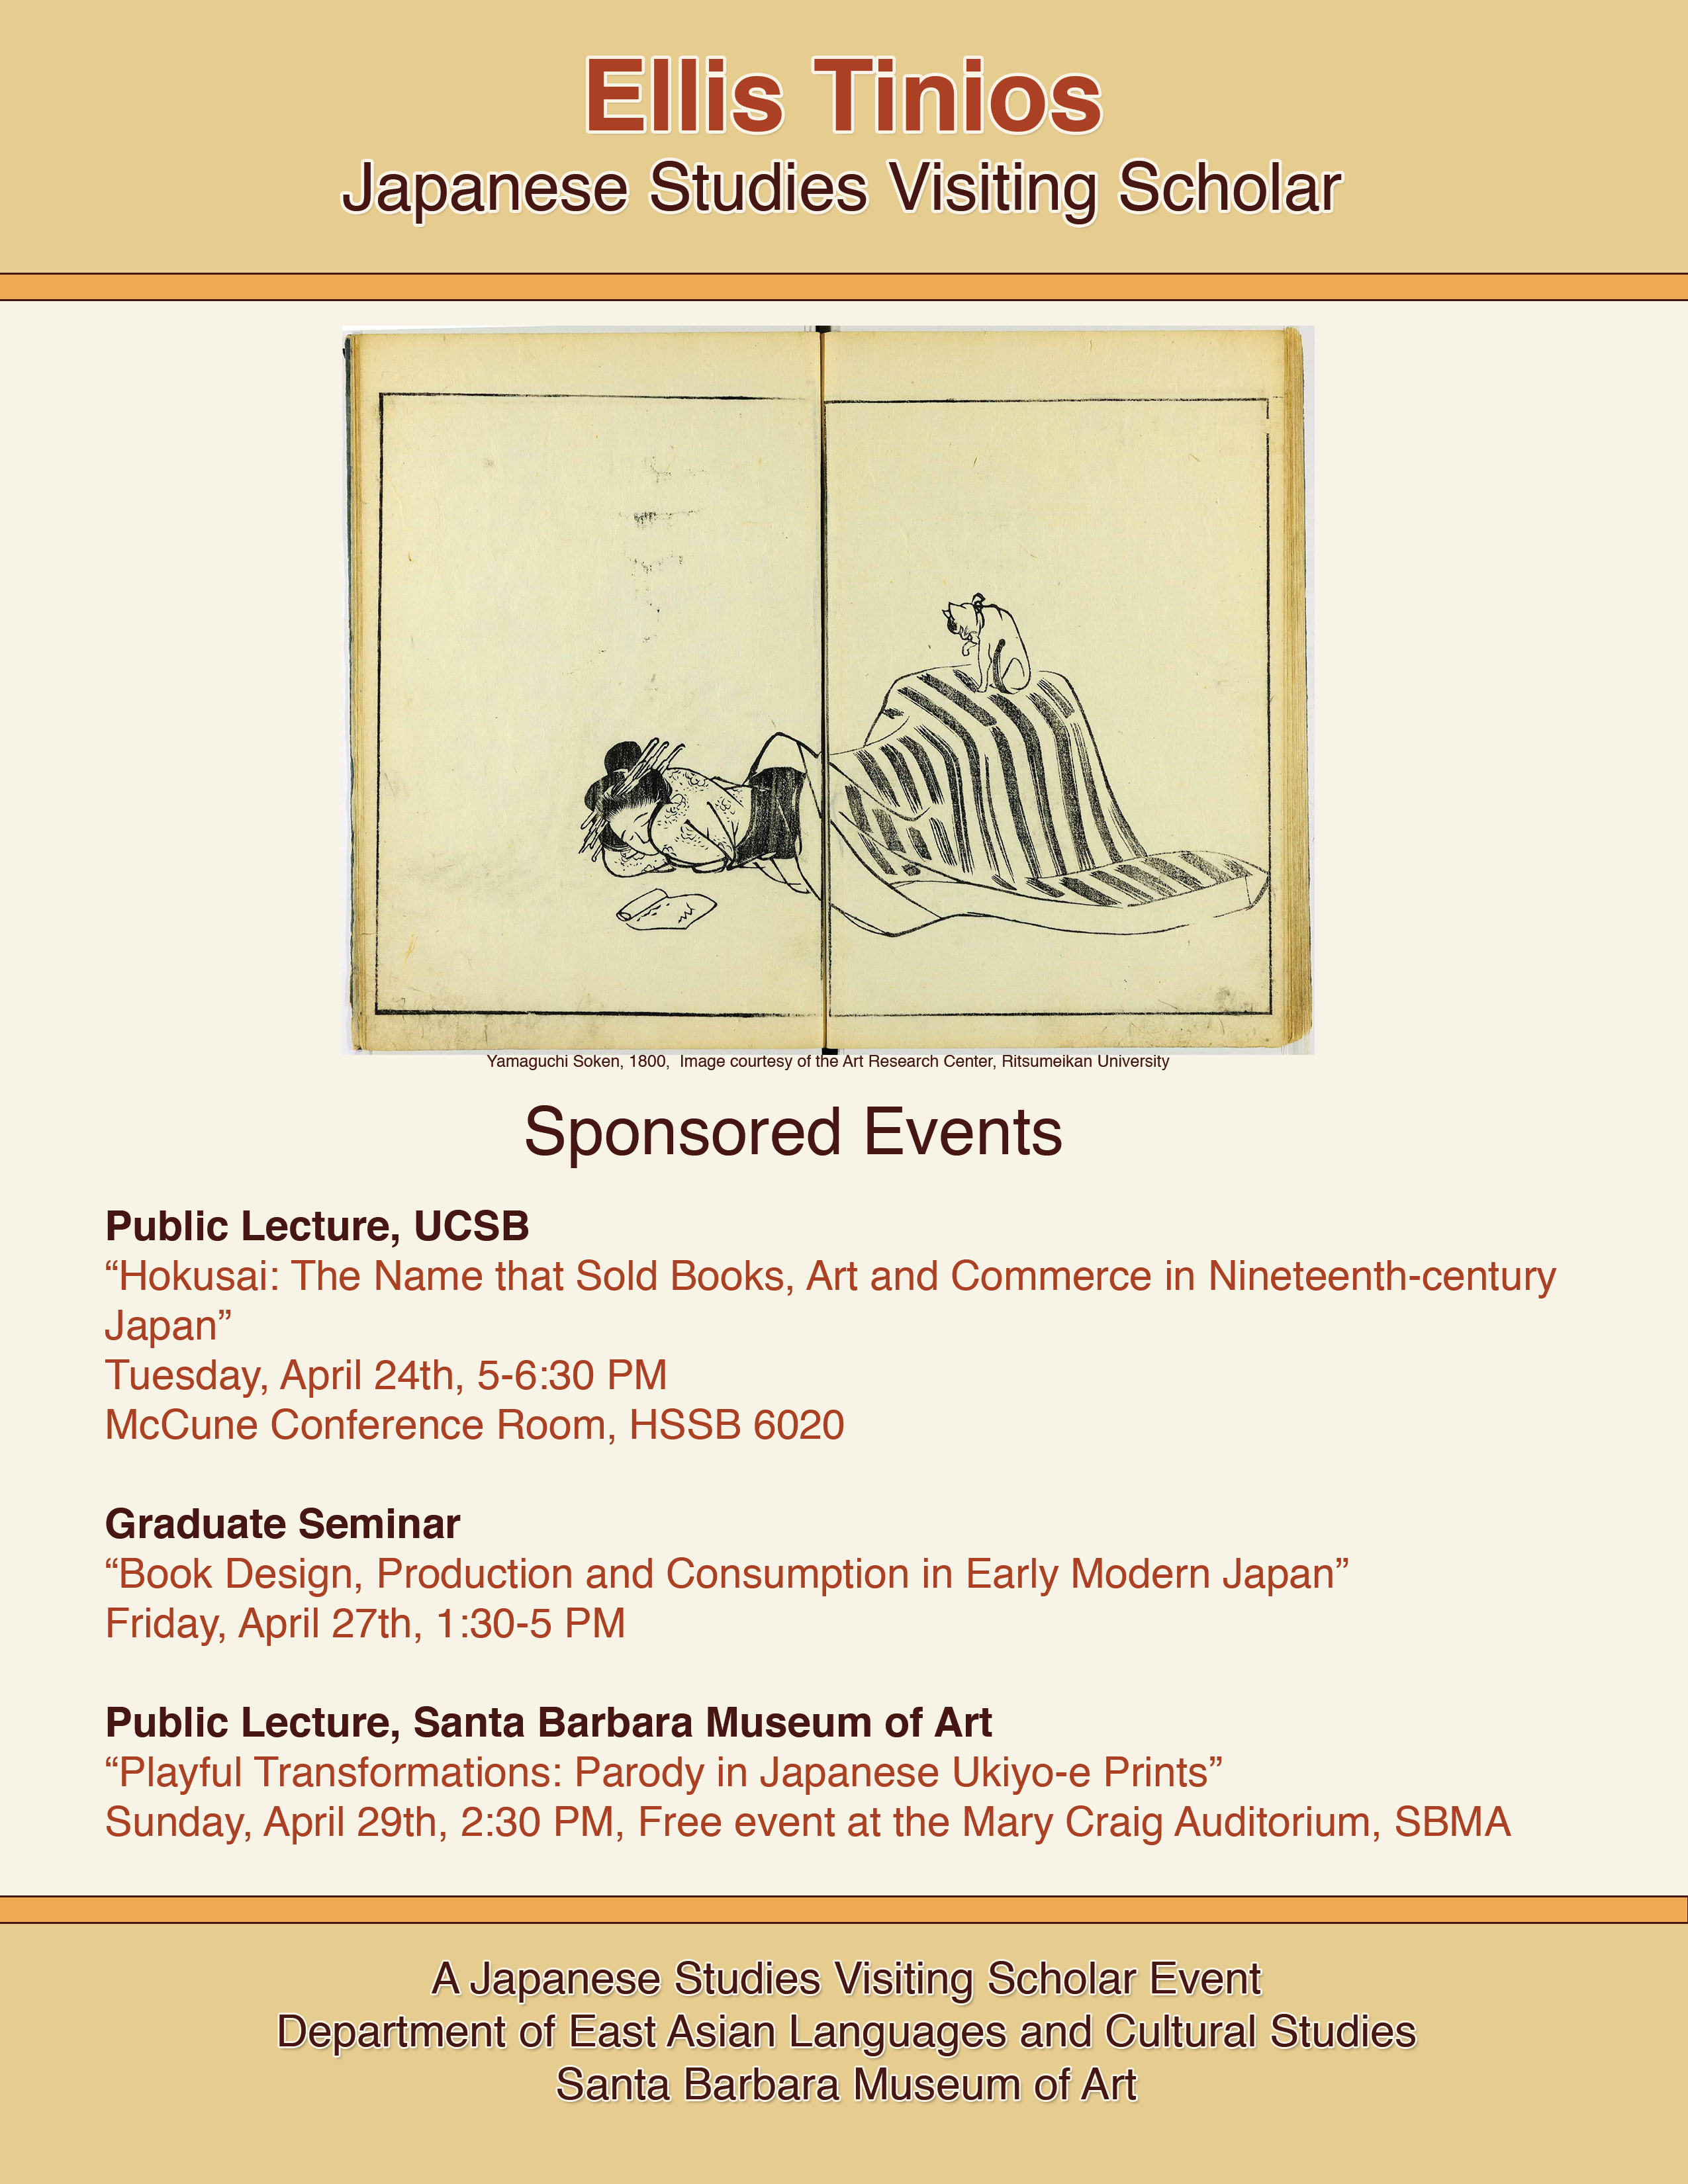 Event flyer for Ellis Tinios lectures.